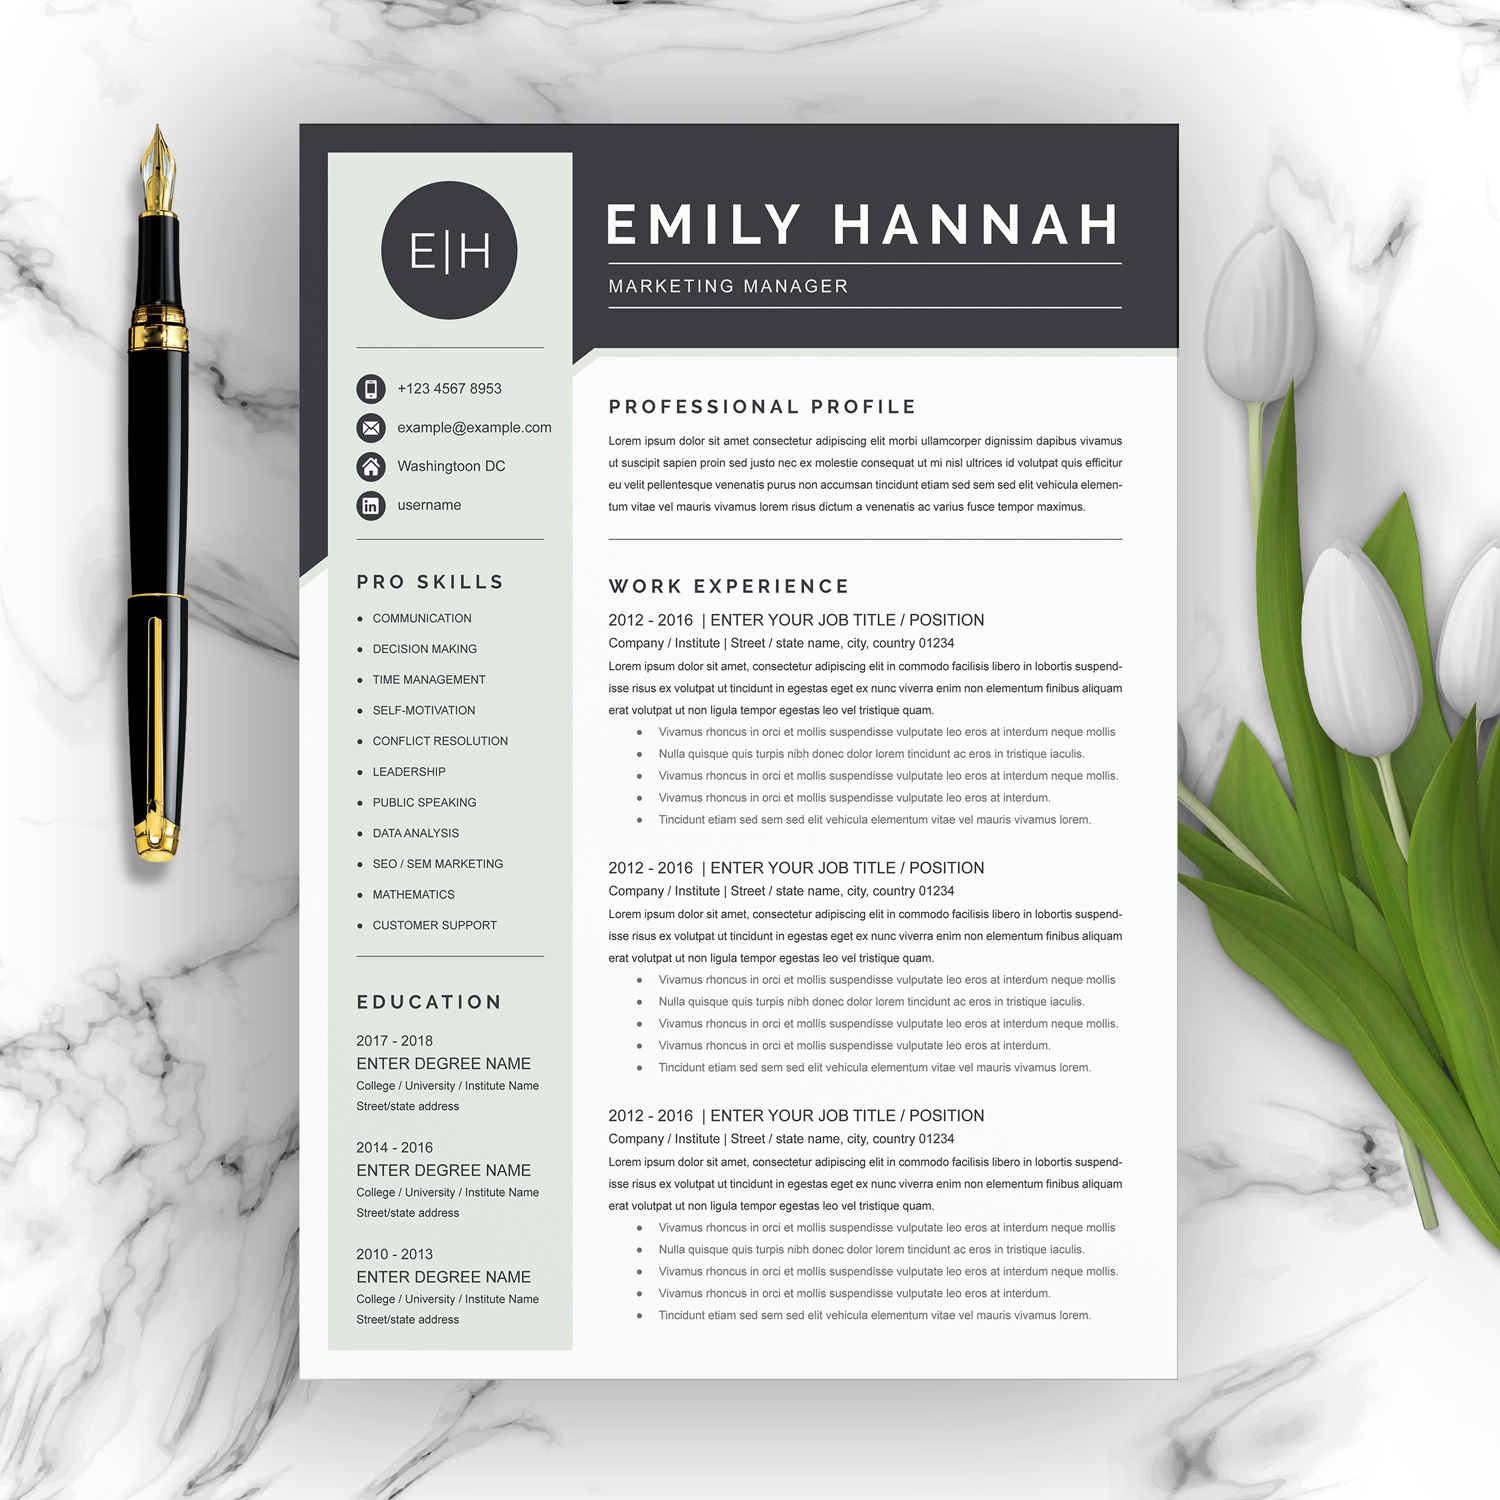 Marketing Manager CV 2021